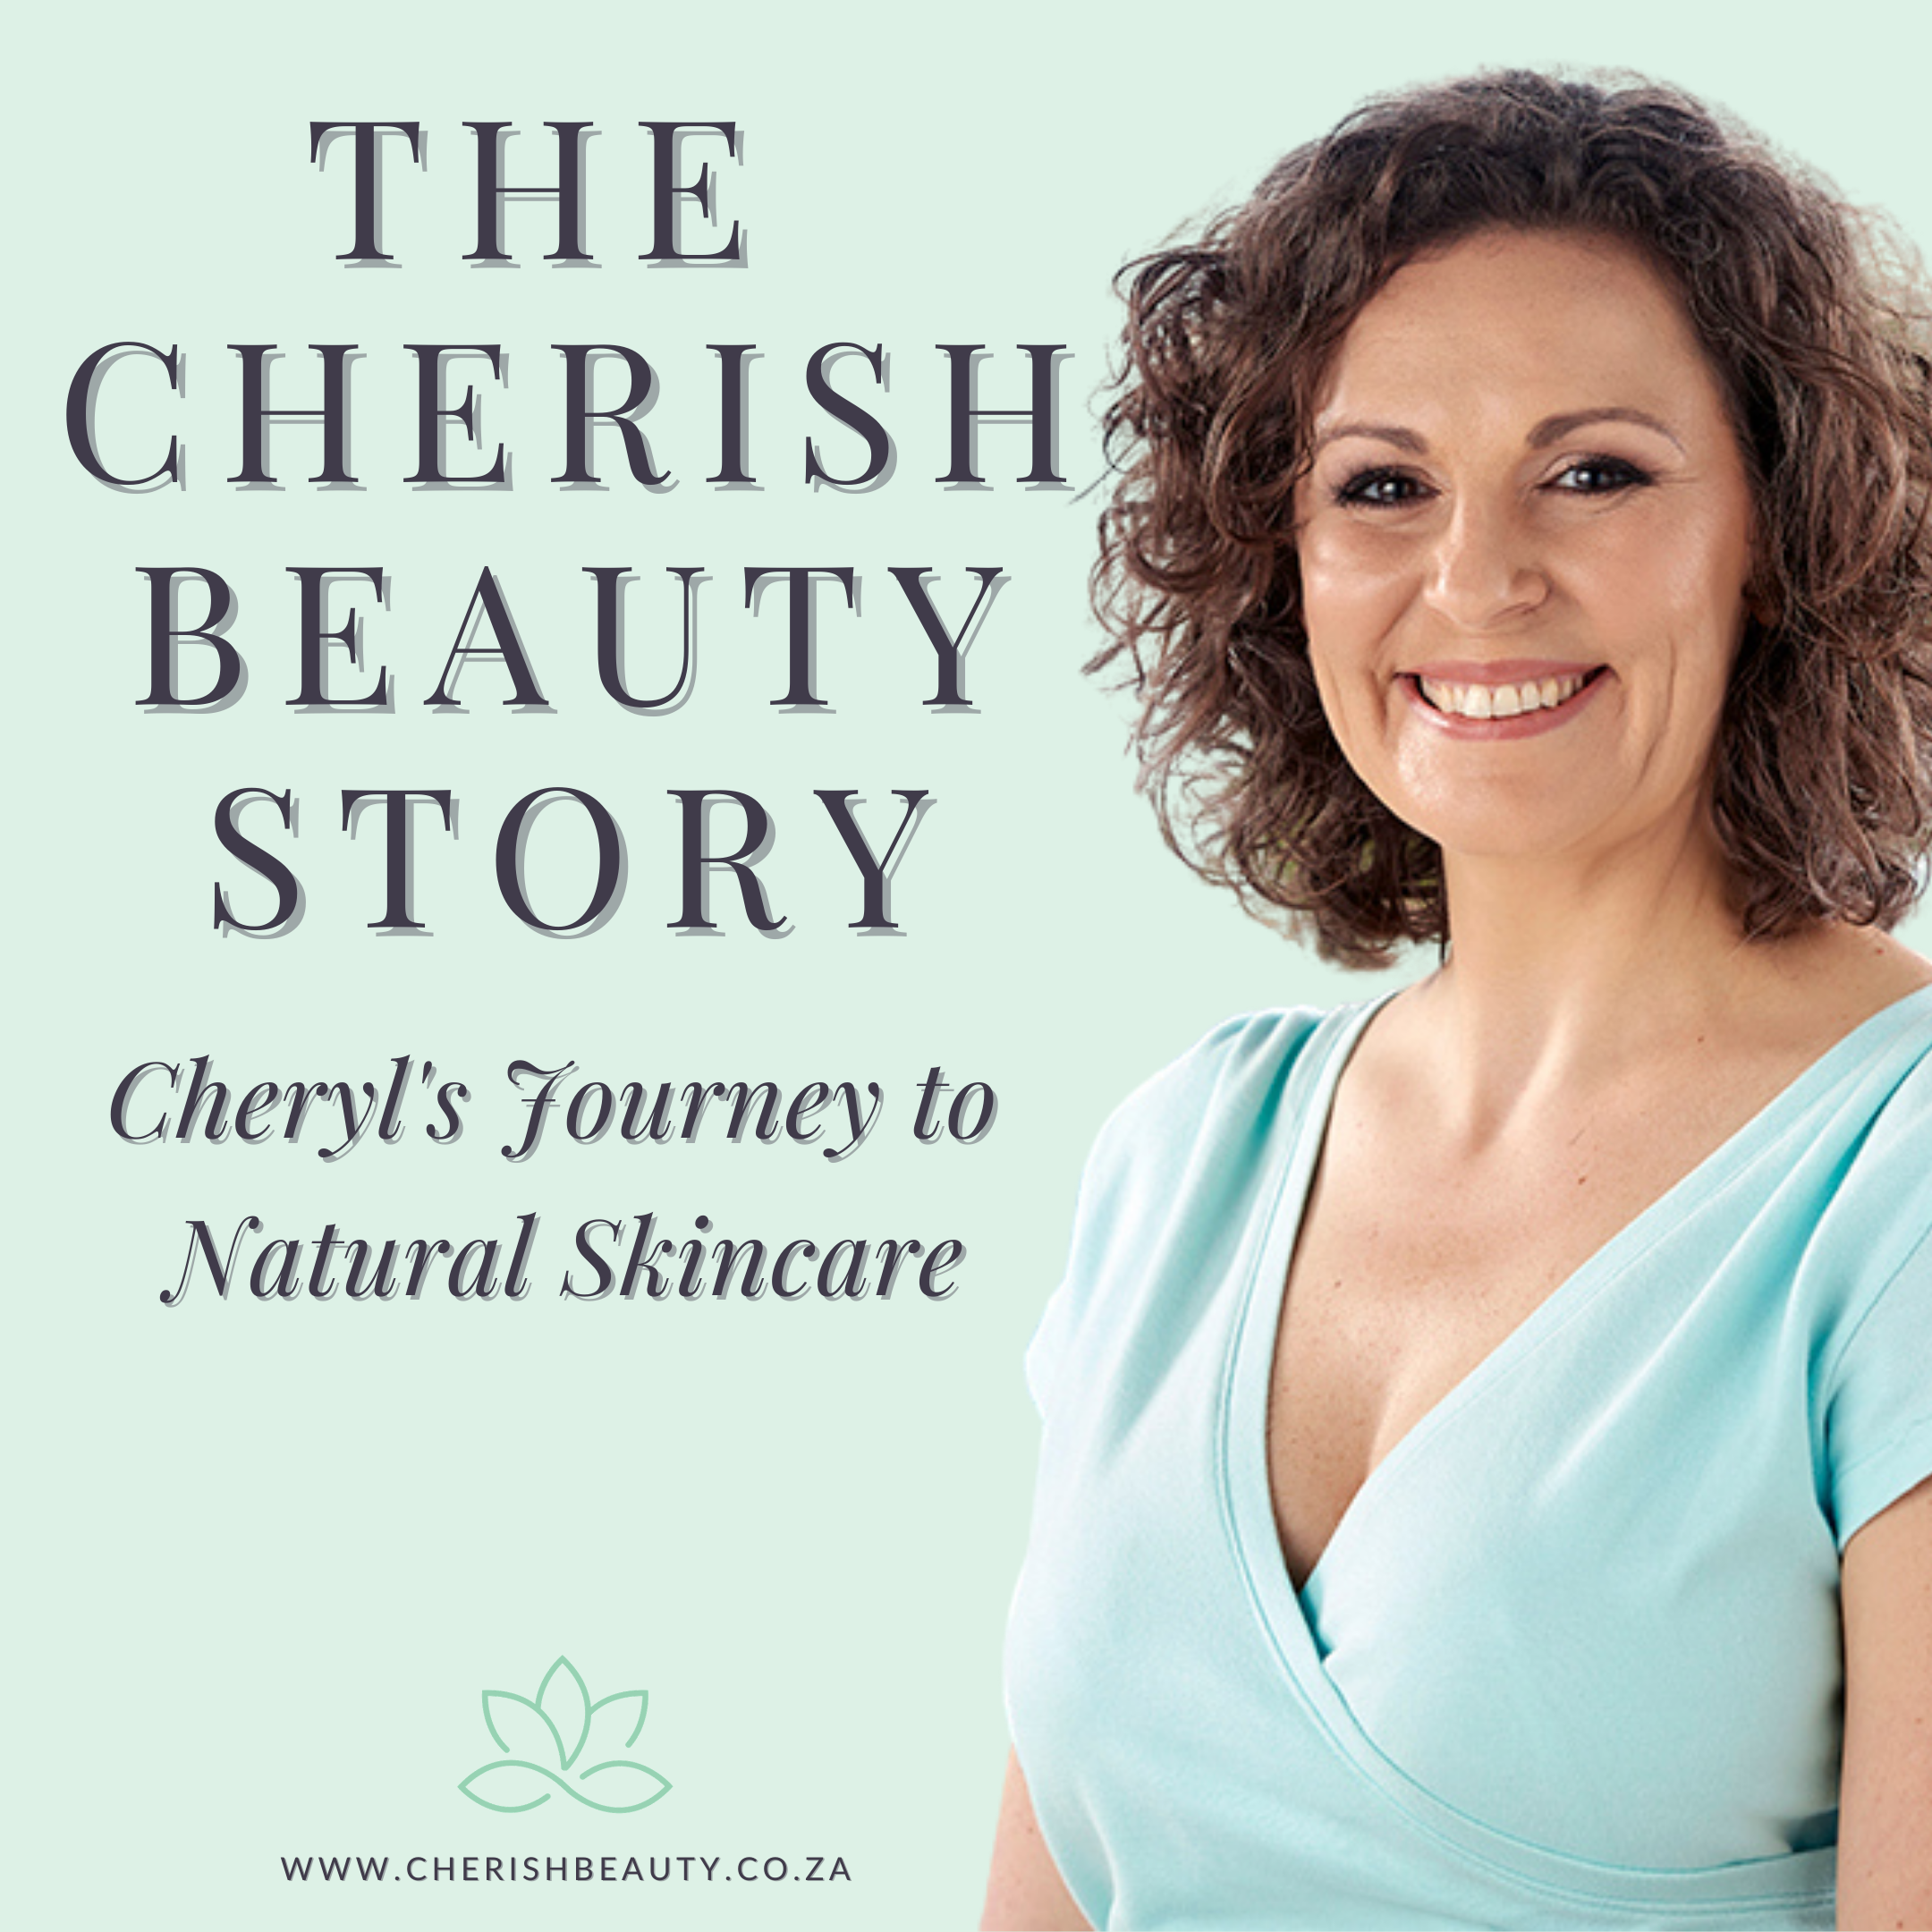 Image of owner Cheryl Lotter on blog post The Cherish Beauty Story